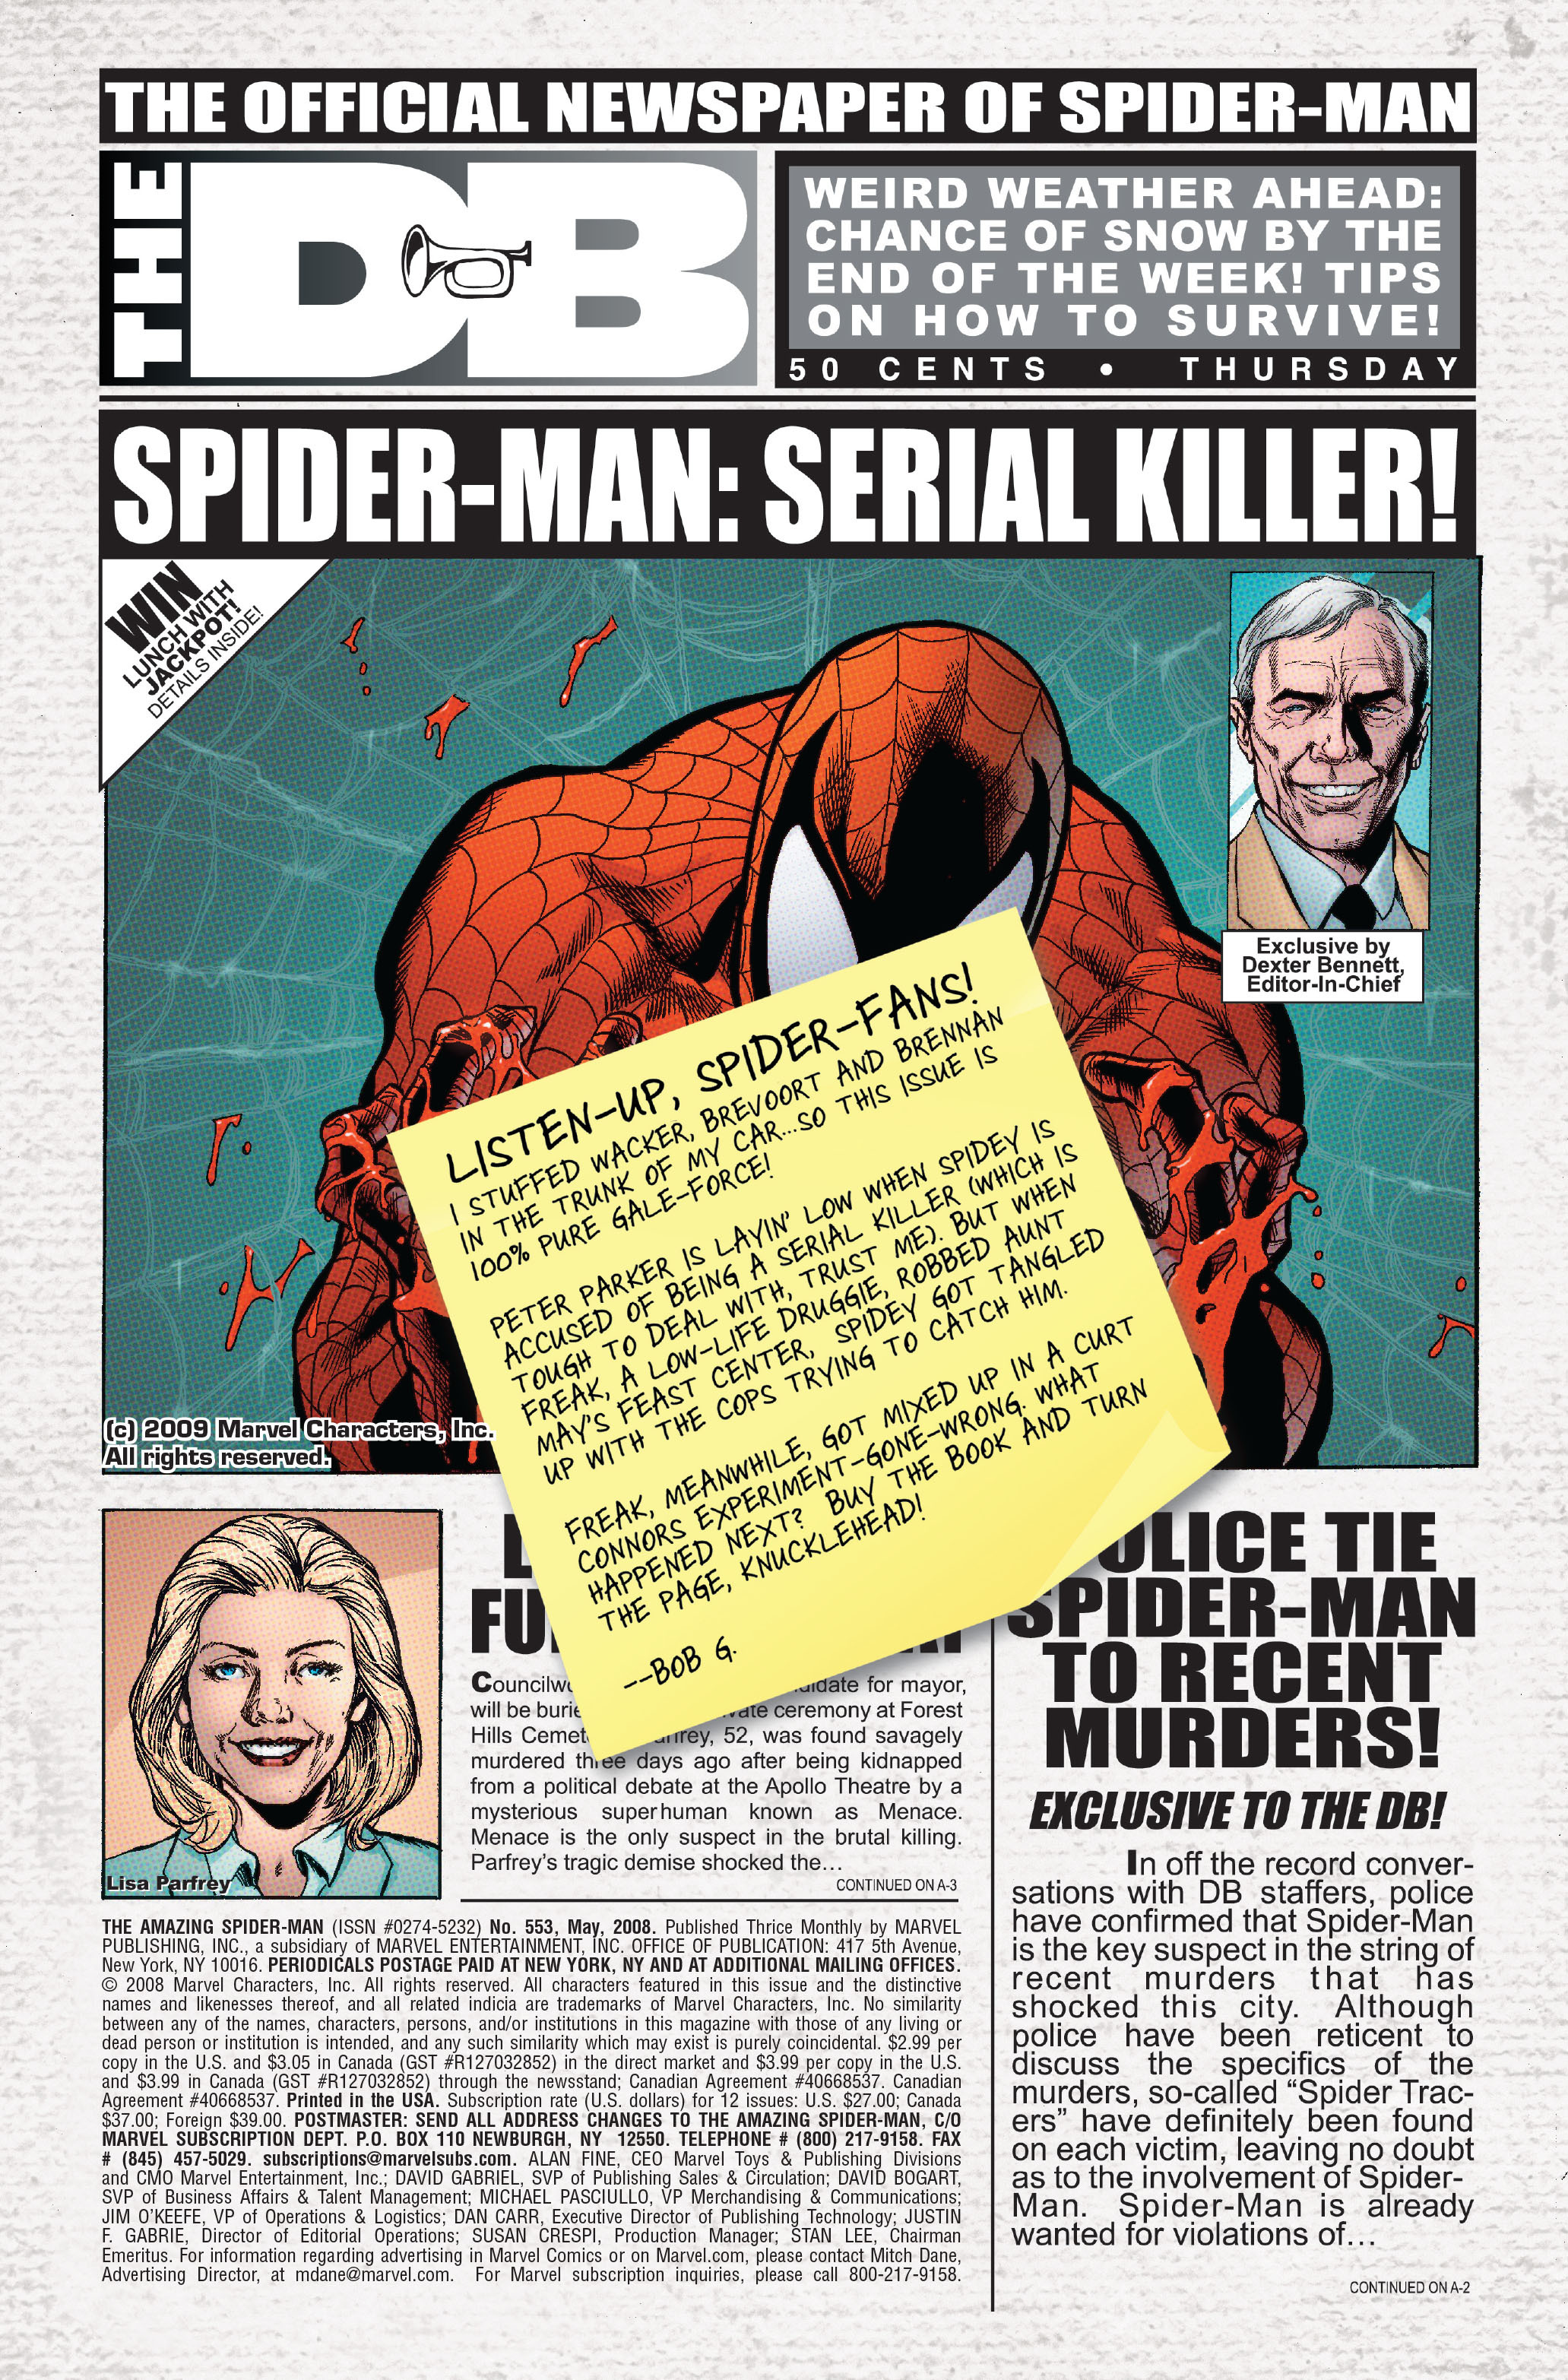 The Amazing Spider-Man (1963) 553 Page 1